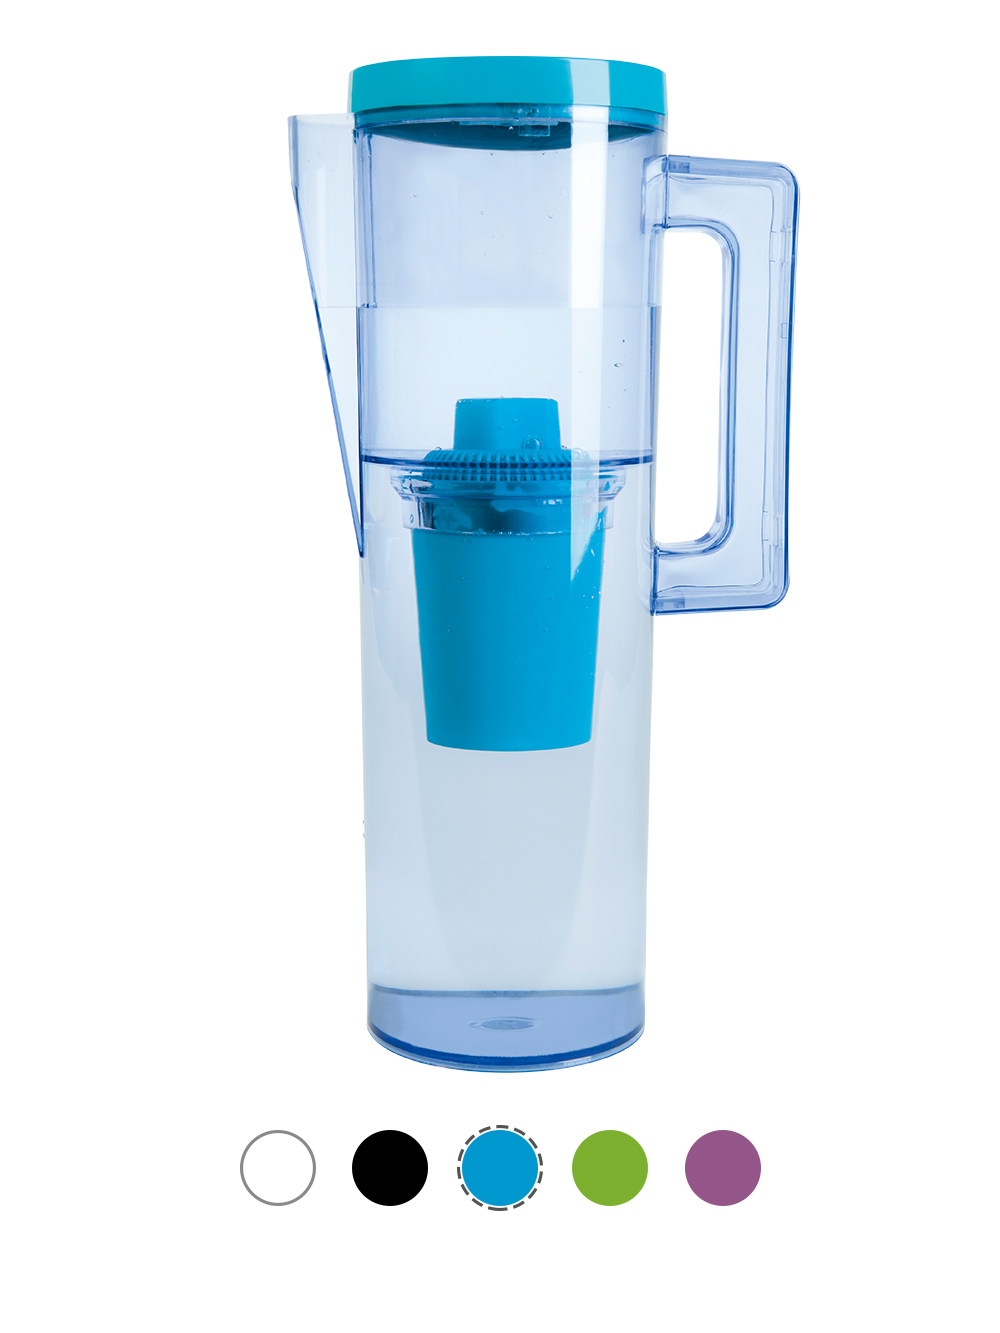 2.5l-water-filter-pitcher-for-refridgator-door-3_1501732525.jpg